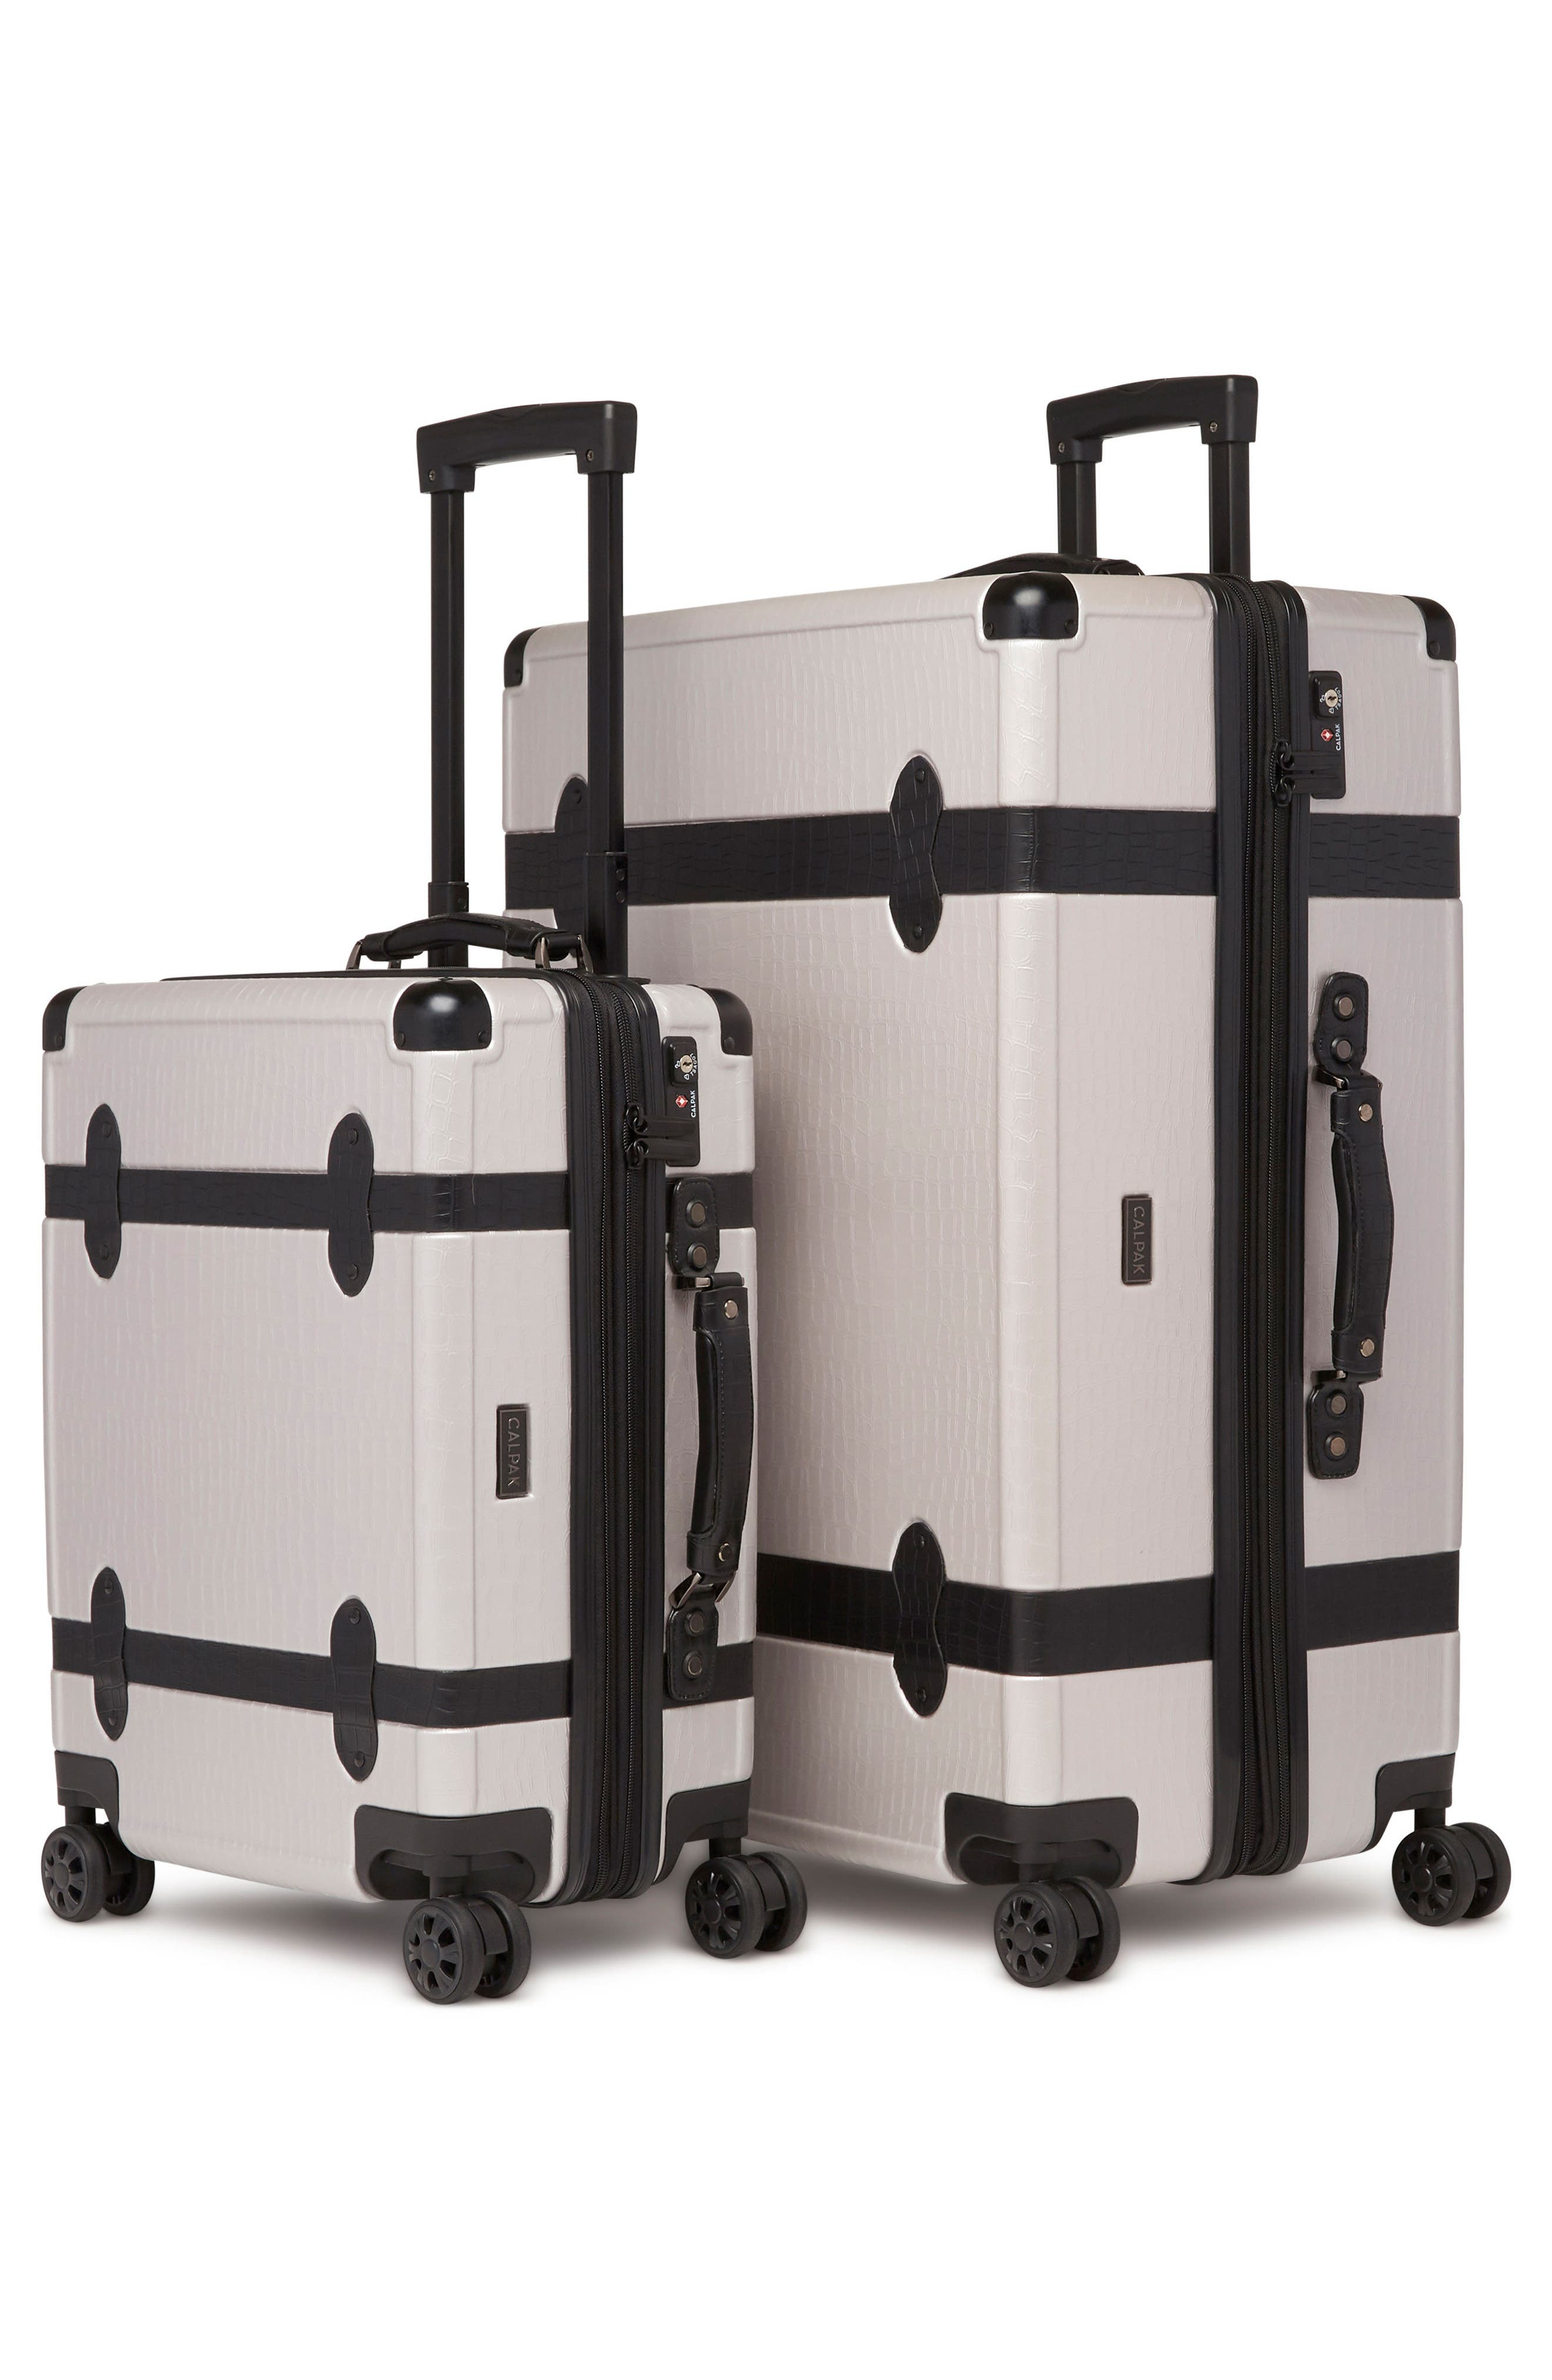 20-Inch & 28-Inch Trunk Rolling Luggage Set,                             Alternate thumbnail 4, color,                             GRAY